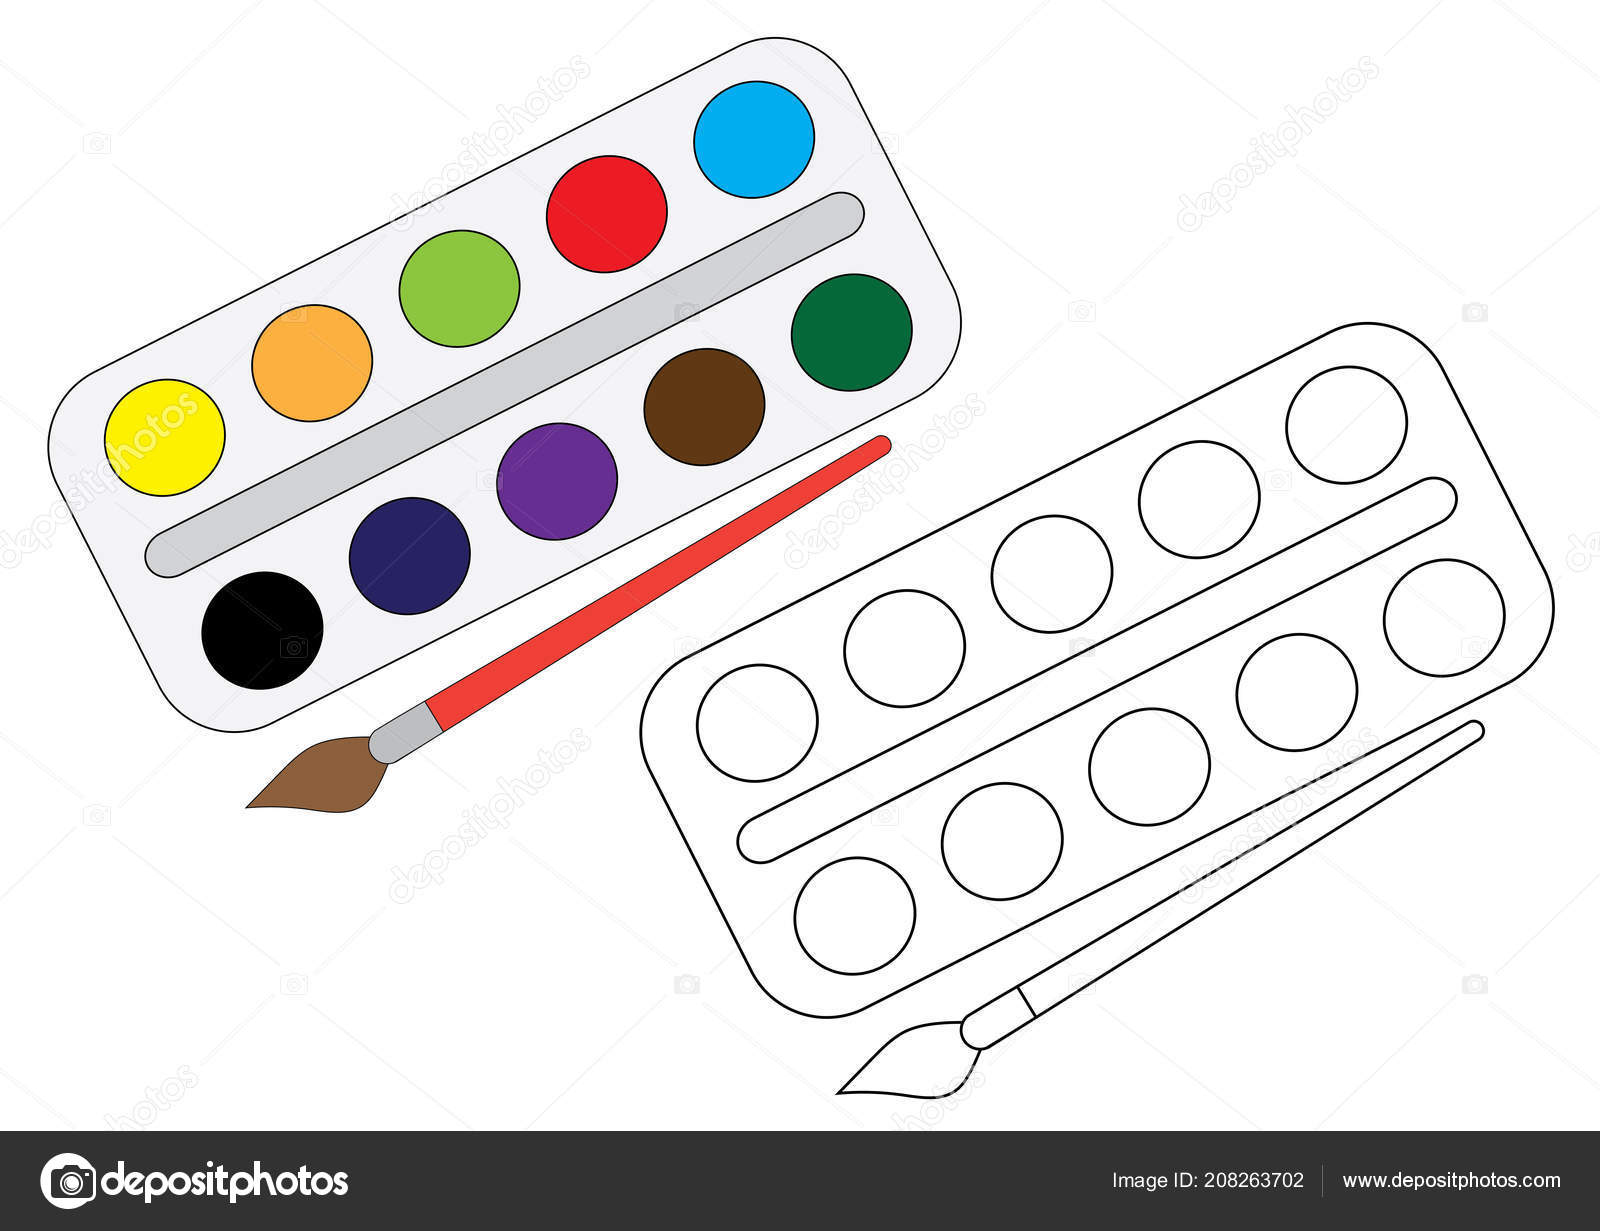 Paint Brush Colouring Pages Watercolor Paint Brush Coloring Page Vector Stock Vector C Irusetka Yandex Ru 208263702